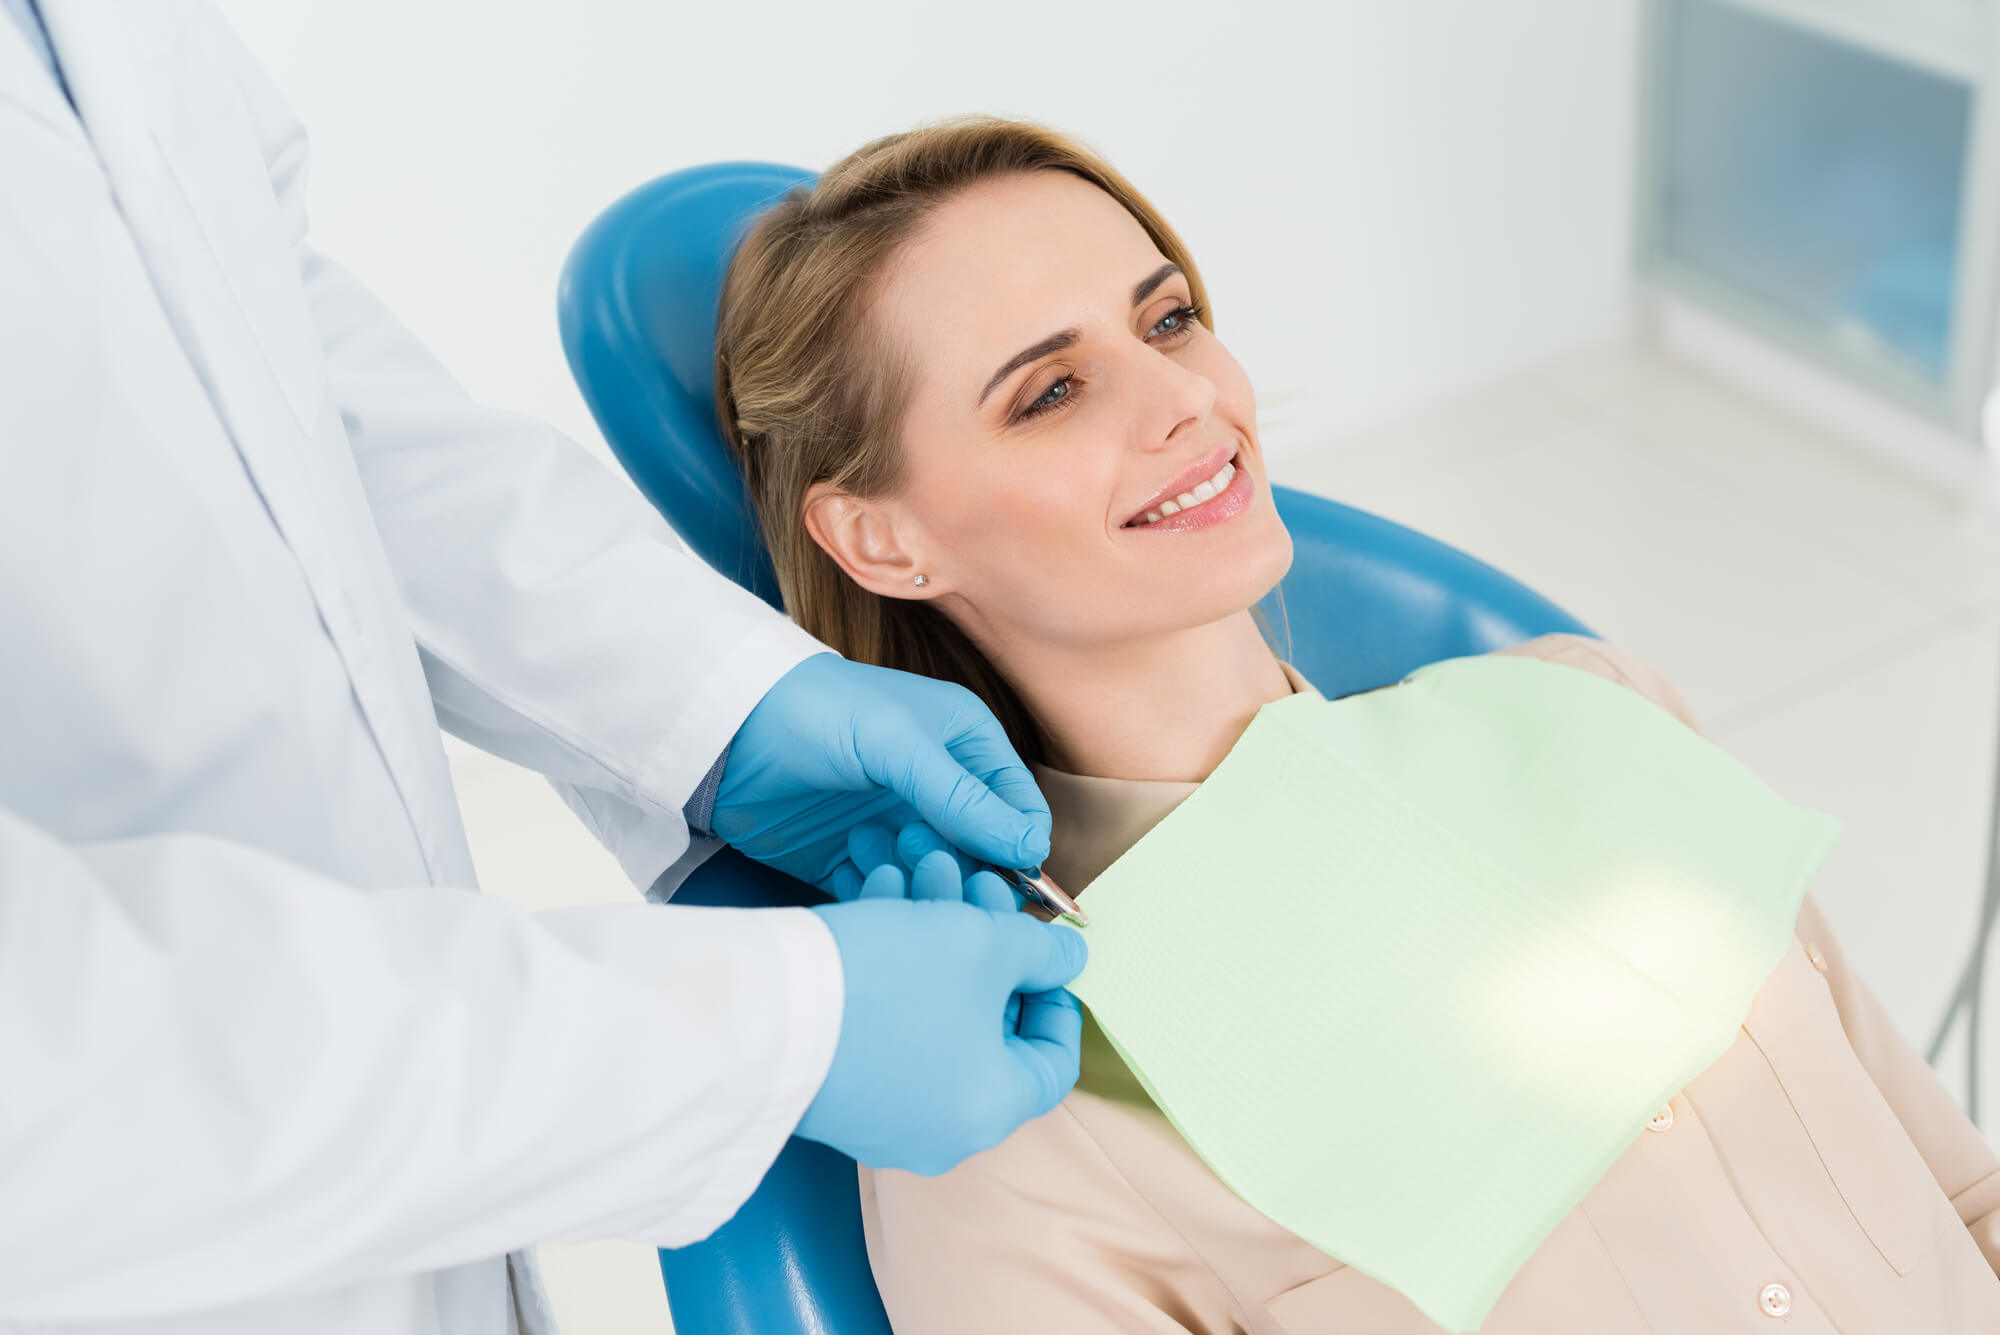 where can I find dental sealants in boynton beach?